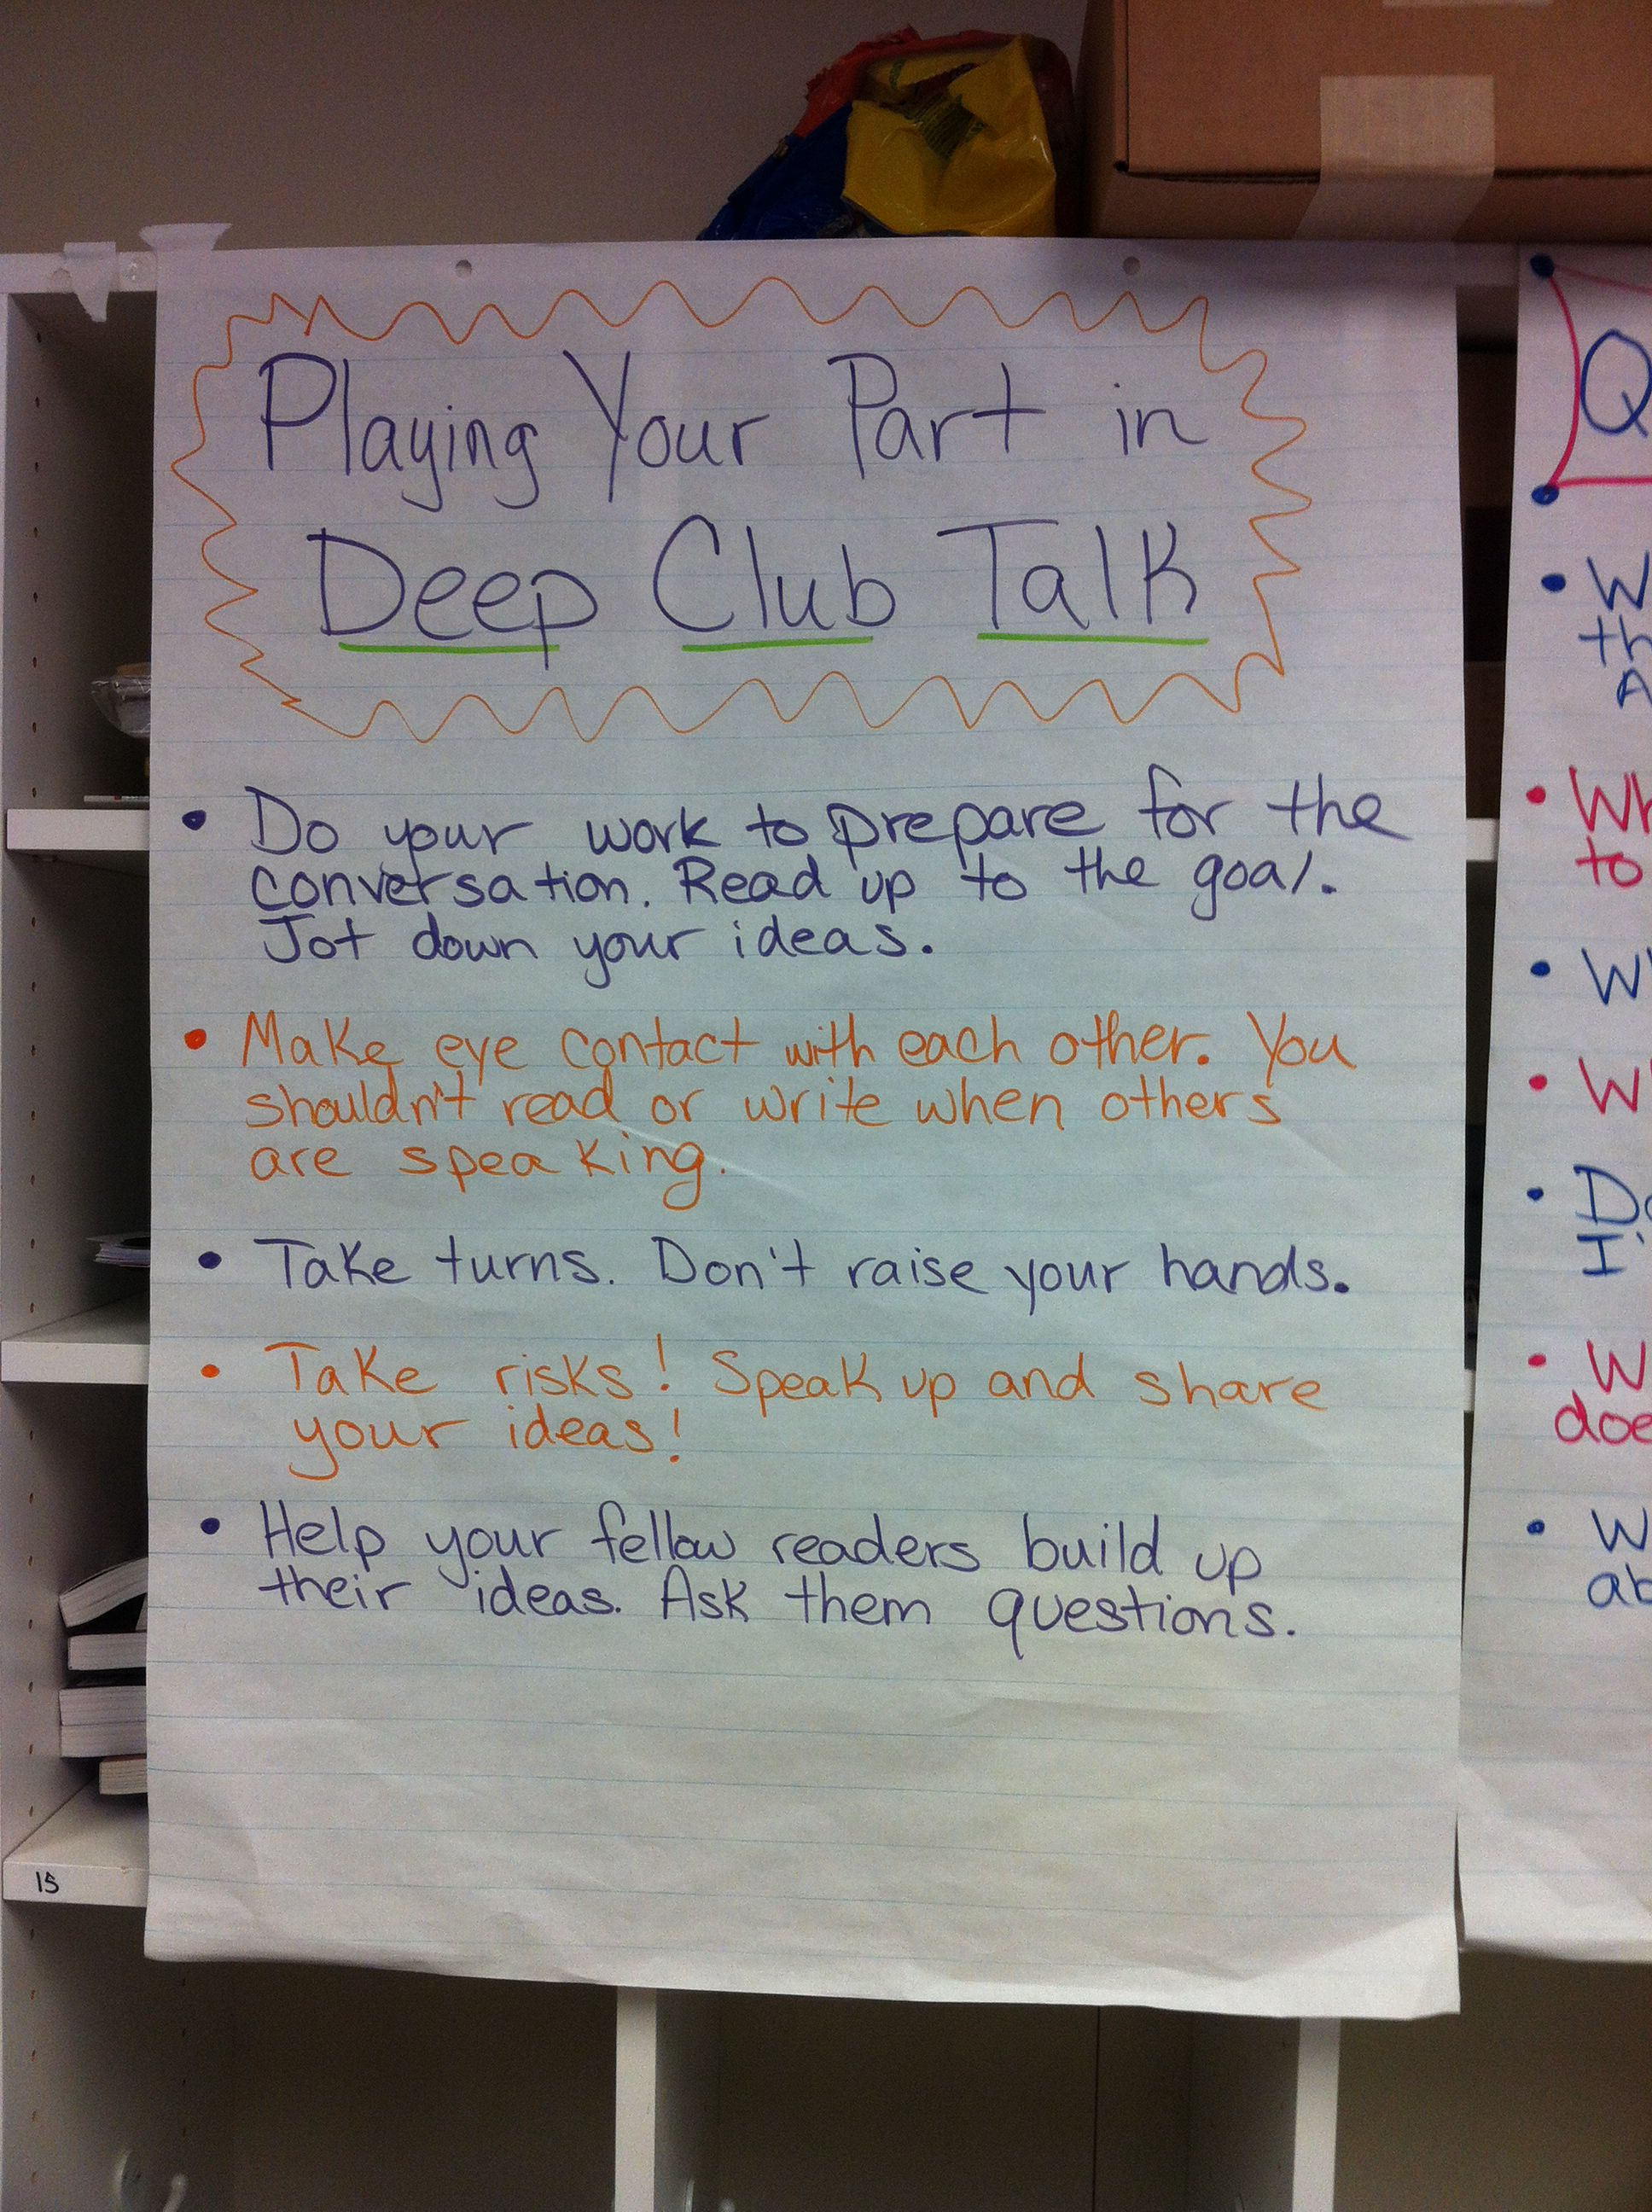 Playing Your Part In Deep Club Talk